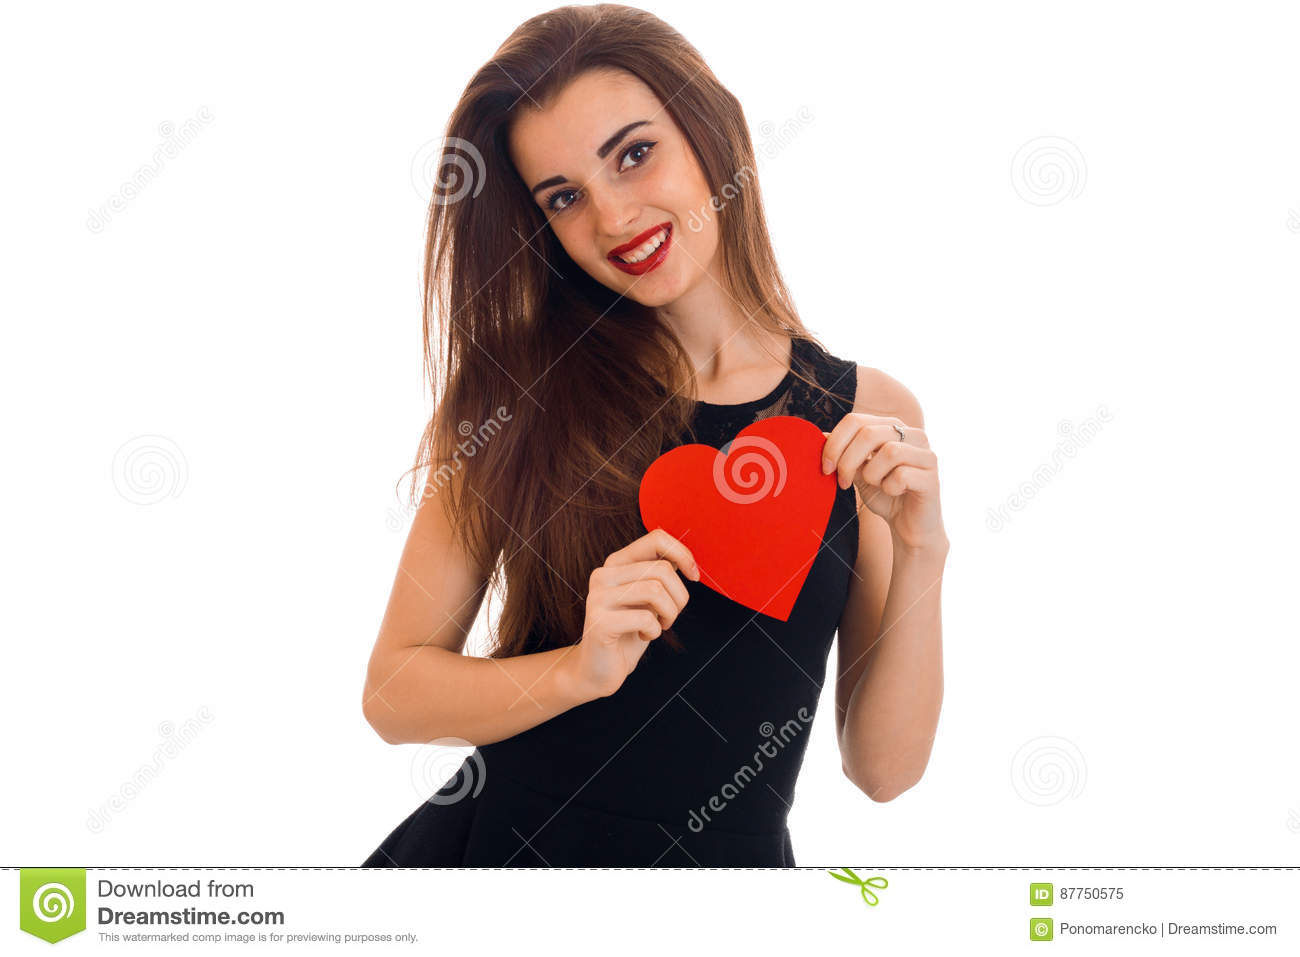 Black dress with red lipstick - Beautiful Young Girl In A Black Dress And Red Lipstick On Lips Holding A Heart Shaped